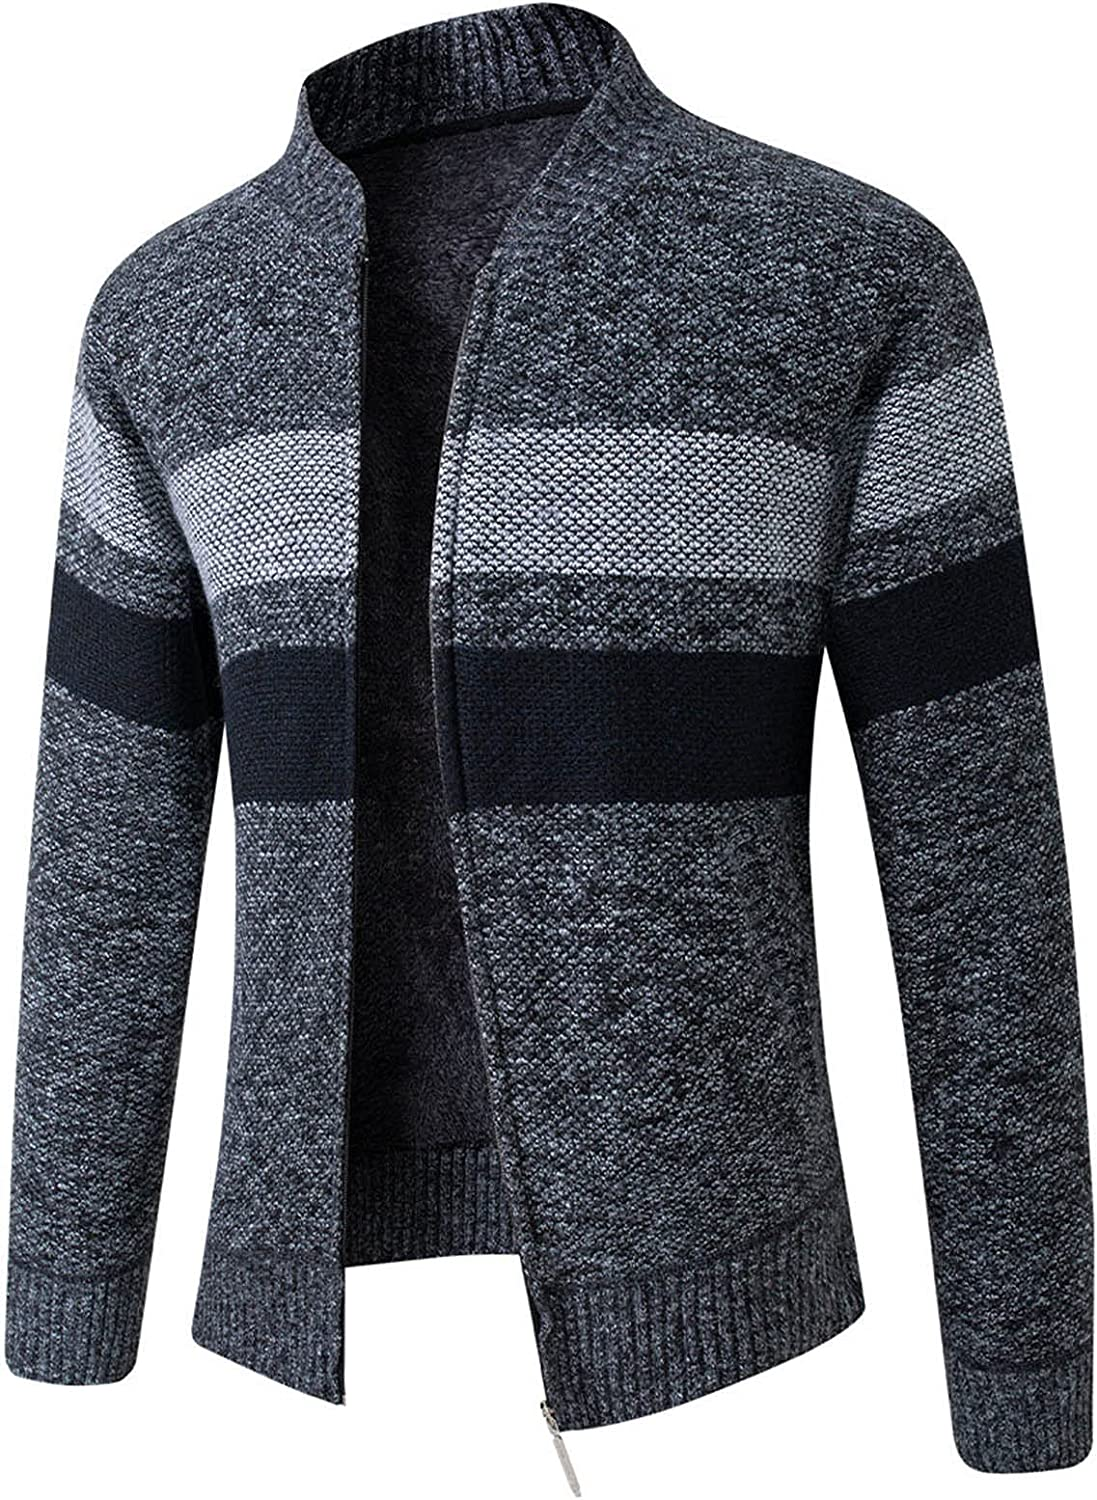 FORUU Men's Sweater Jacket Fall Winter Overcoat Color Matching Stand-up Collar Wool Coat Casual Knitted Sweater Coat